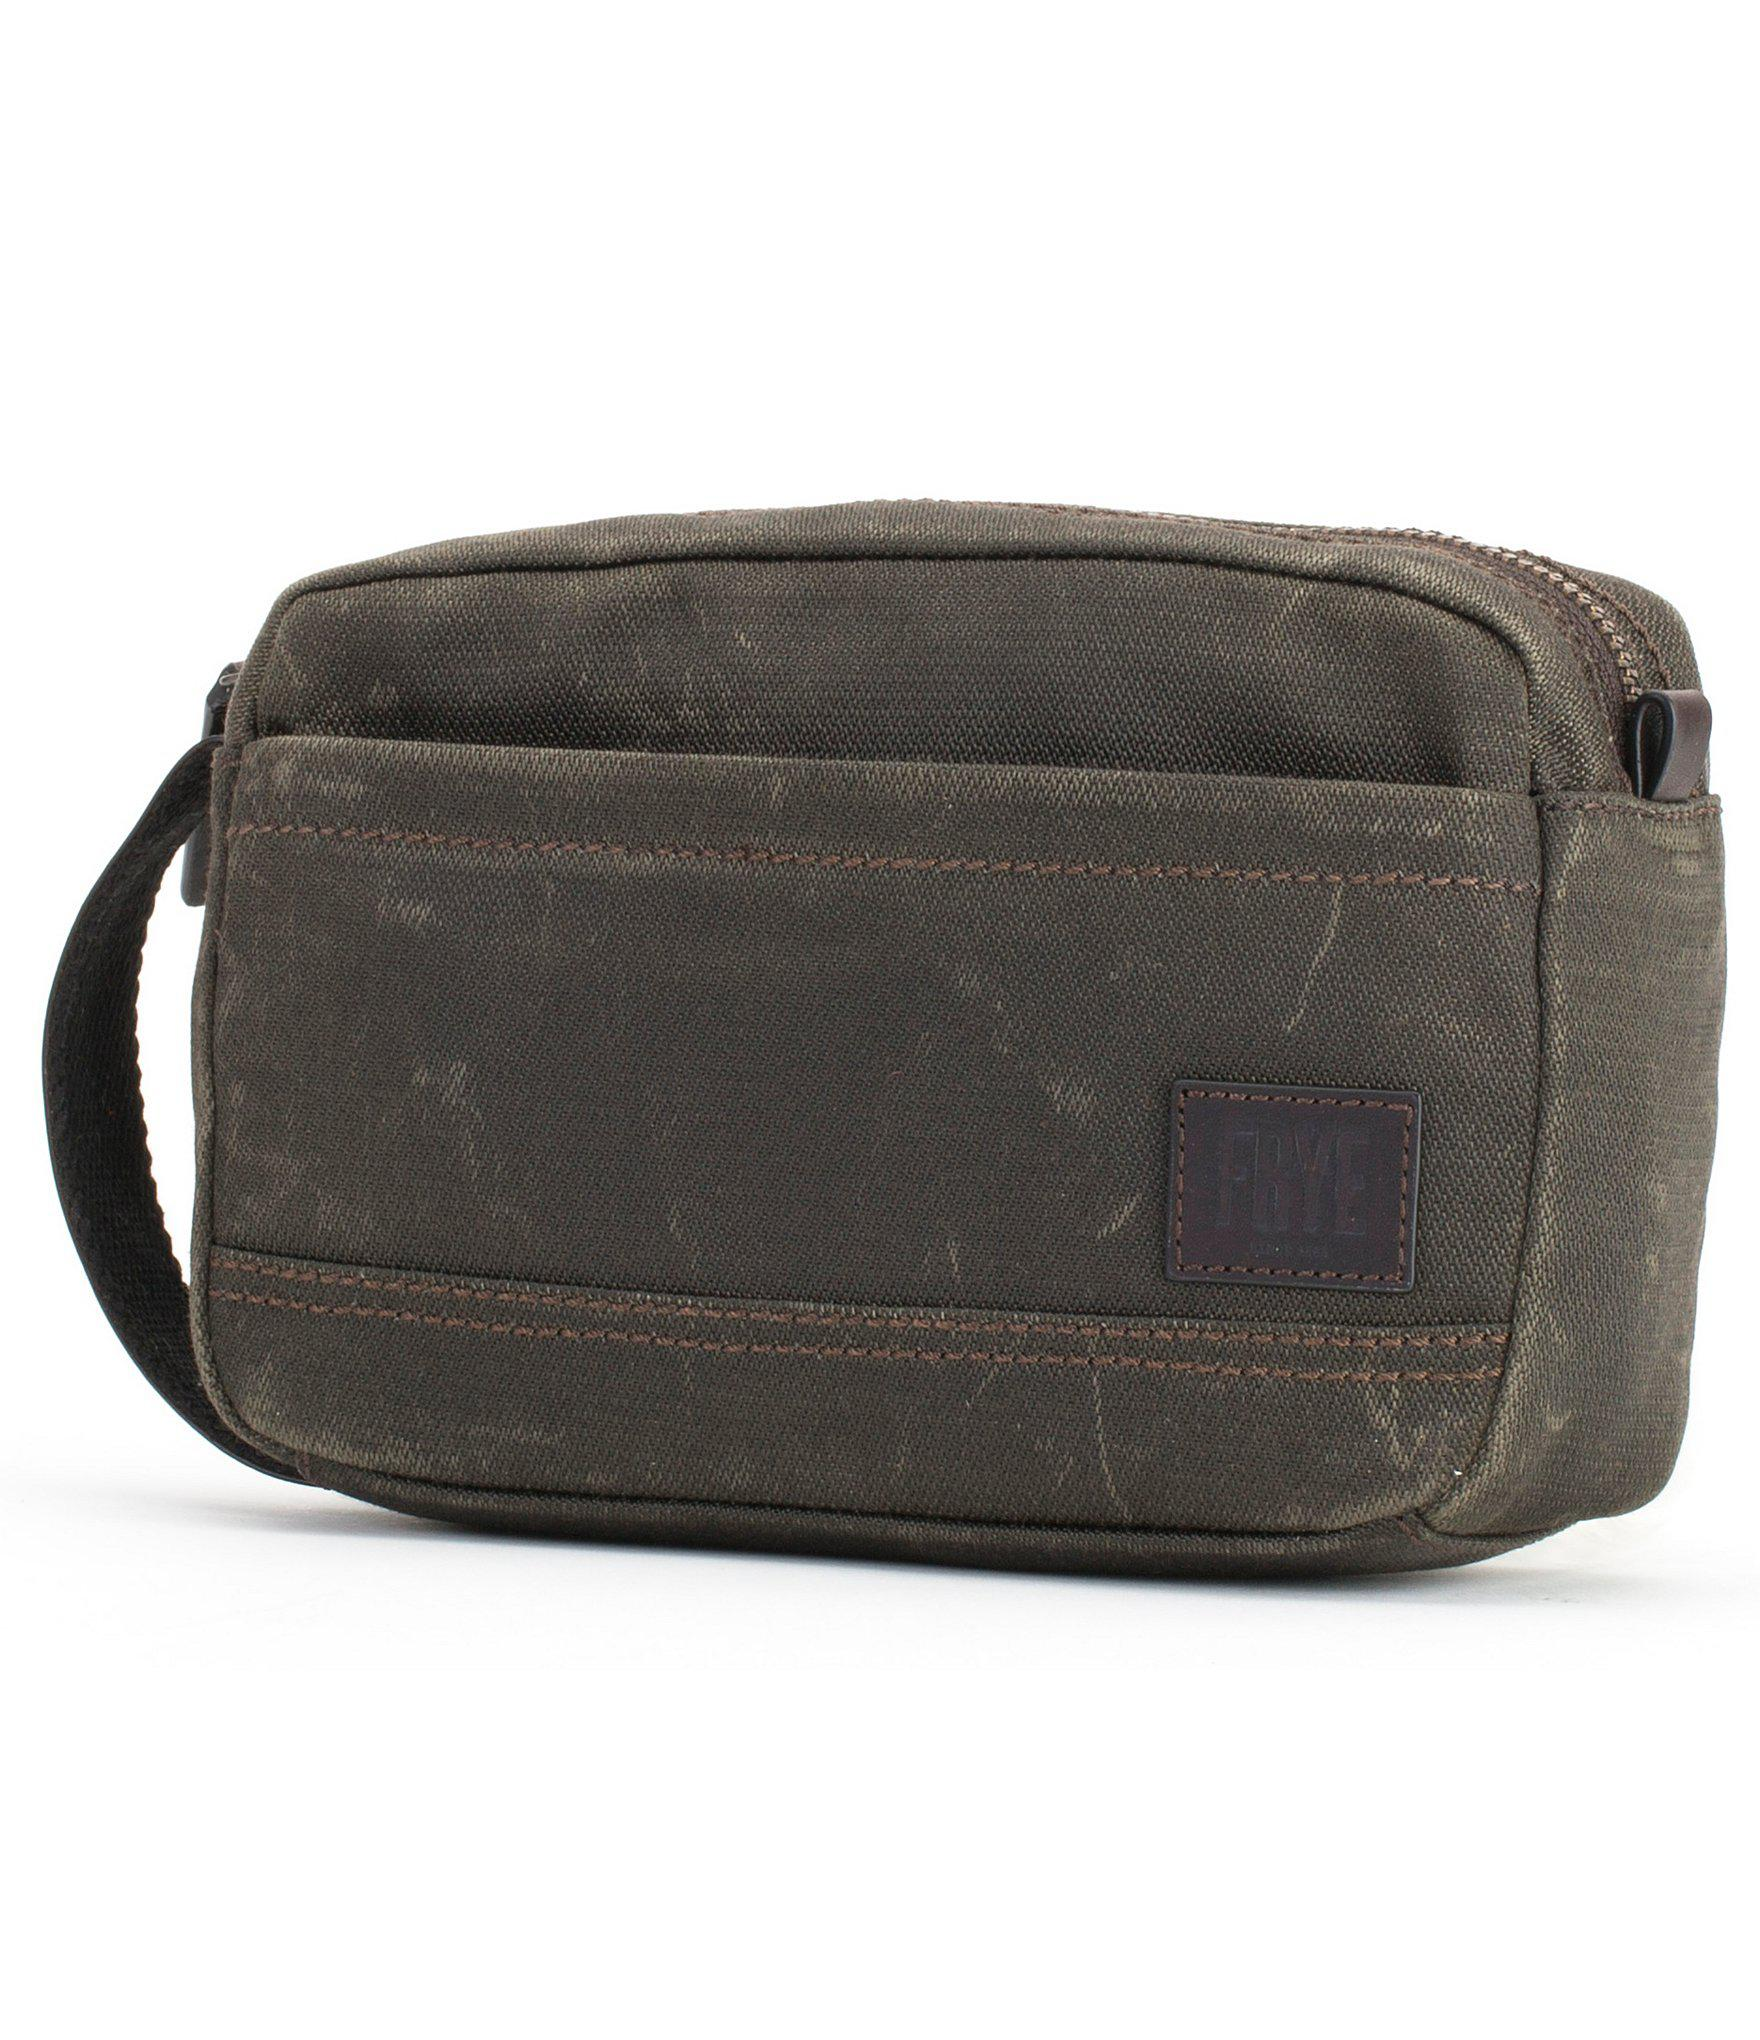 c01c32e7cb7d Lyst - Frye Carter Slim Dopp Kit in Green for Men